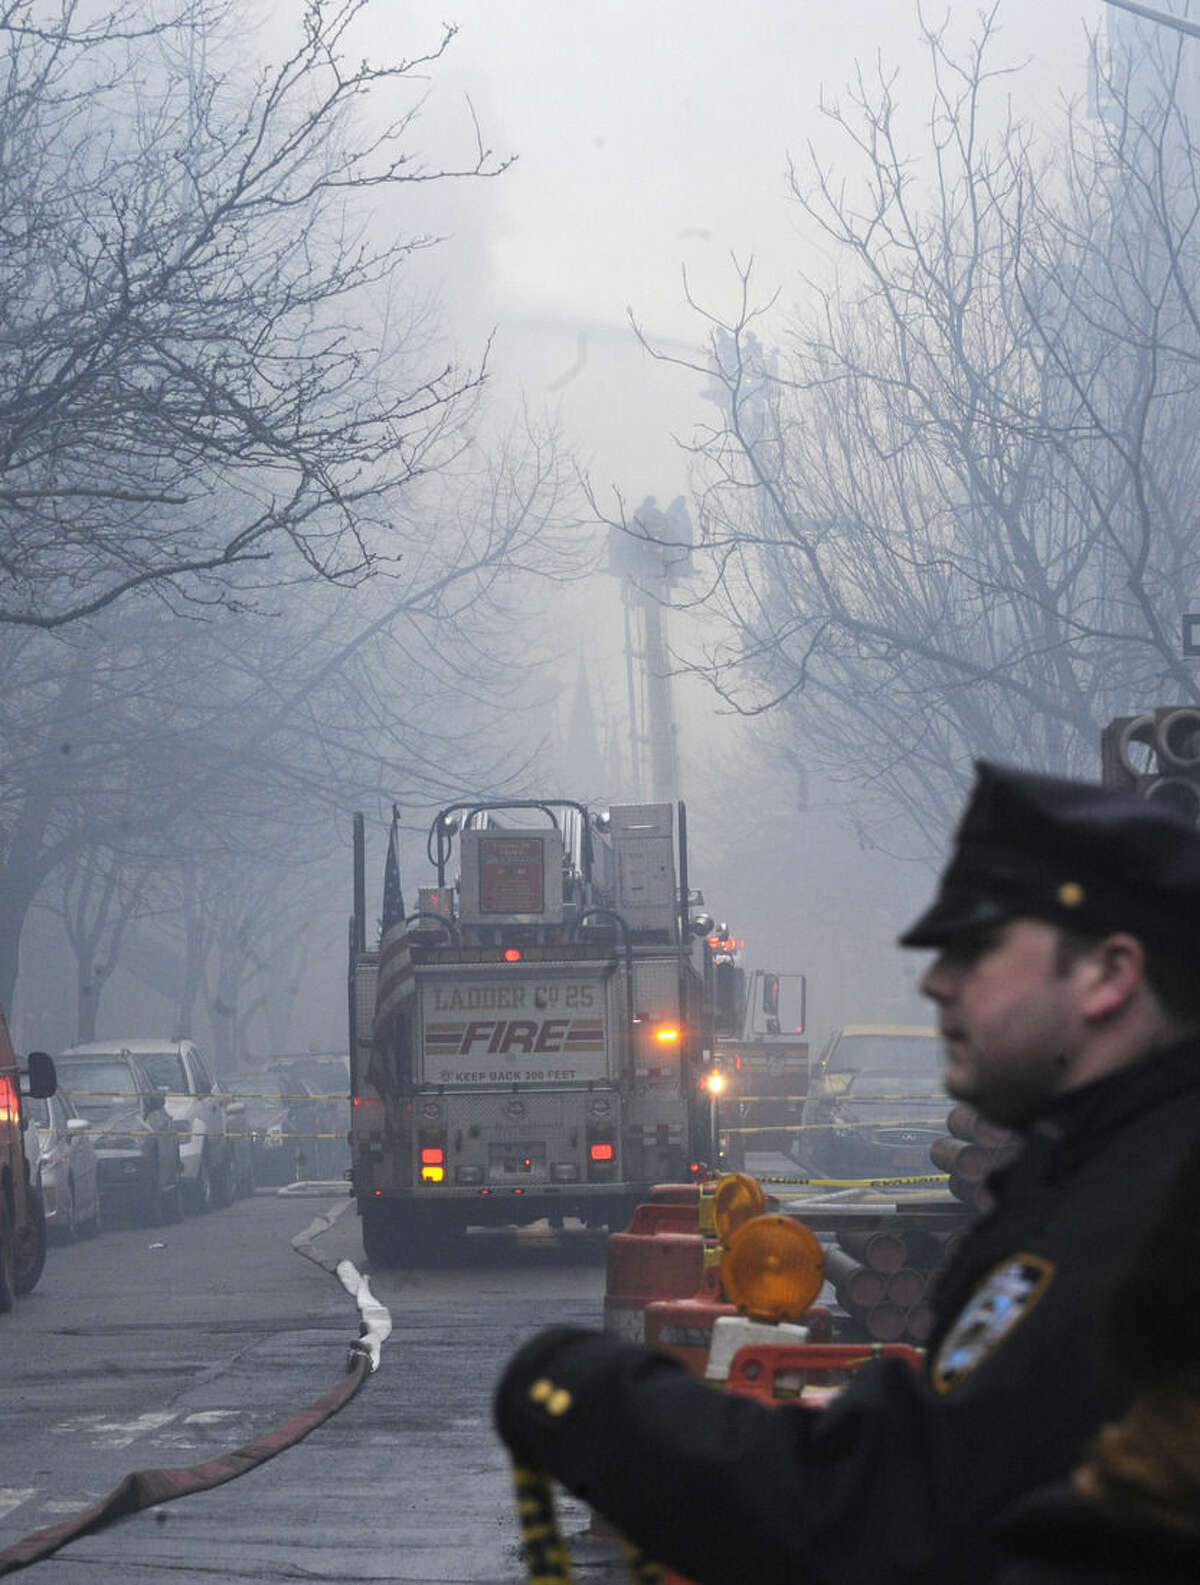 New York City firefighters arrive at the scene of a large fire and a partial building collapse in the East Village neighborhood of New York on Thursday, March 26, 2015. Orange flames and black smoke are billowing from the facade and roof of the building near several New York University buildings. (AP Photo/ Louis Lanzano)